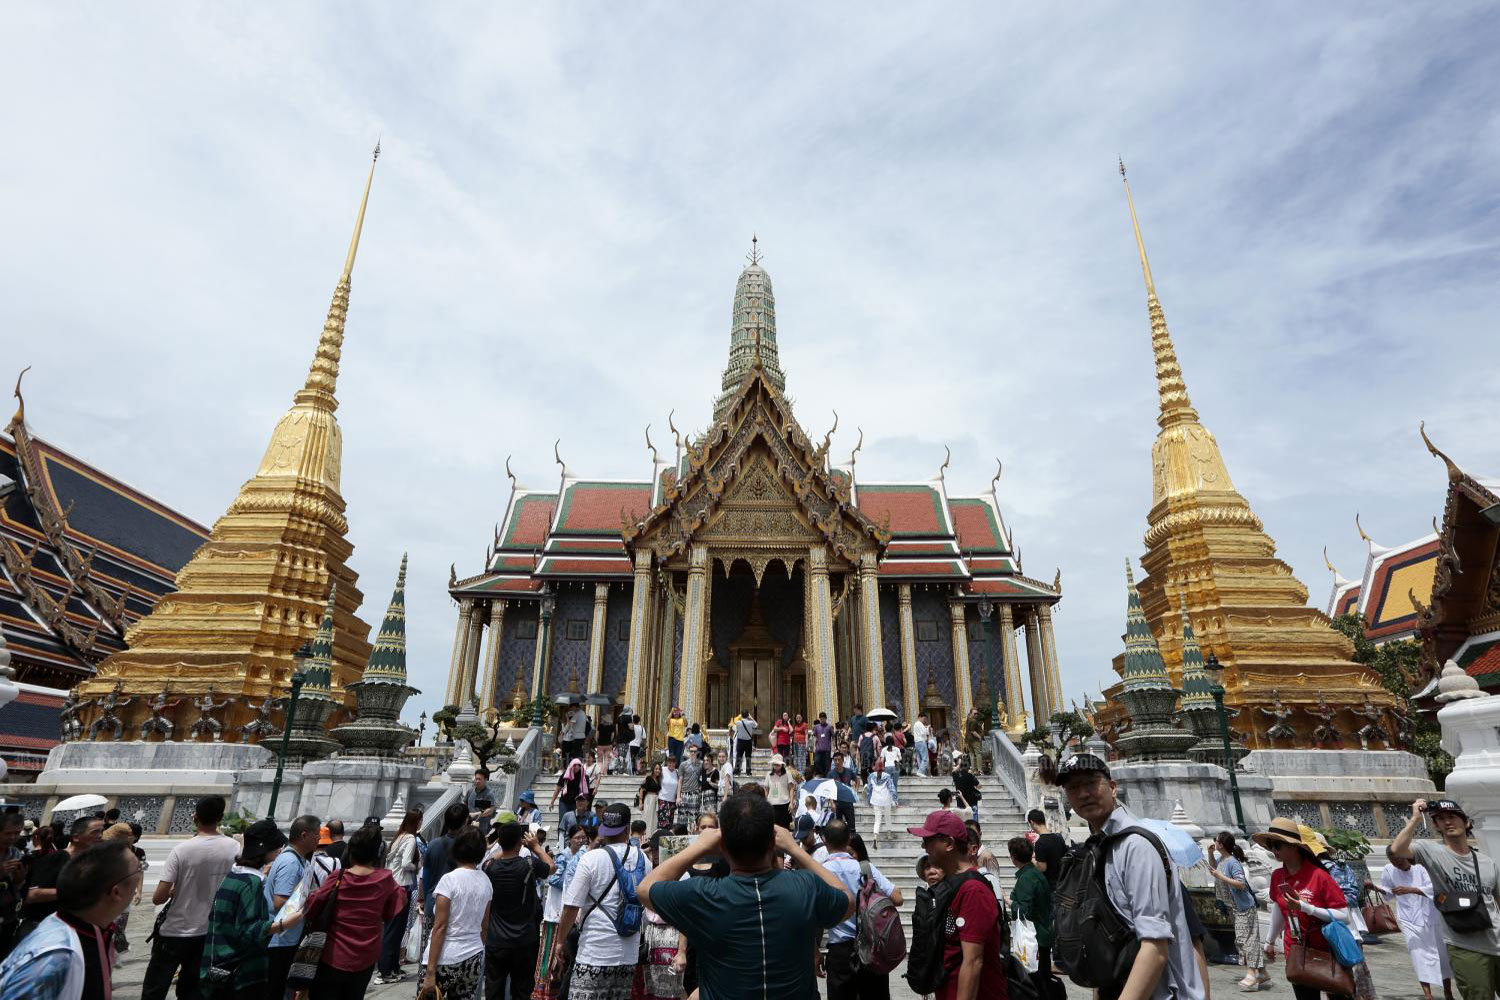 Tourists flock to Wat Phra Kaew (Temple of the Emerald Buddha) in Bangkok, which is known as one of Thailand's premier landmarks. Built 237 years ago, Wat Phra Kaew attracts thousands of visitors each day.